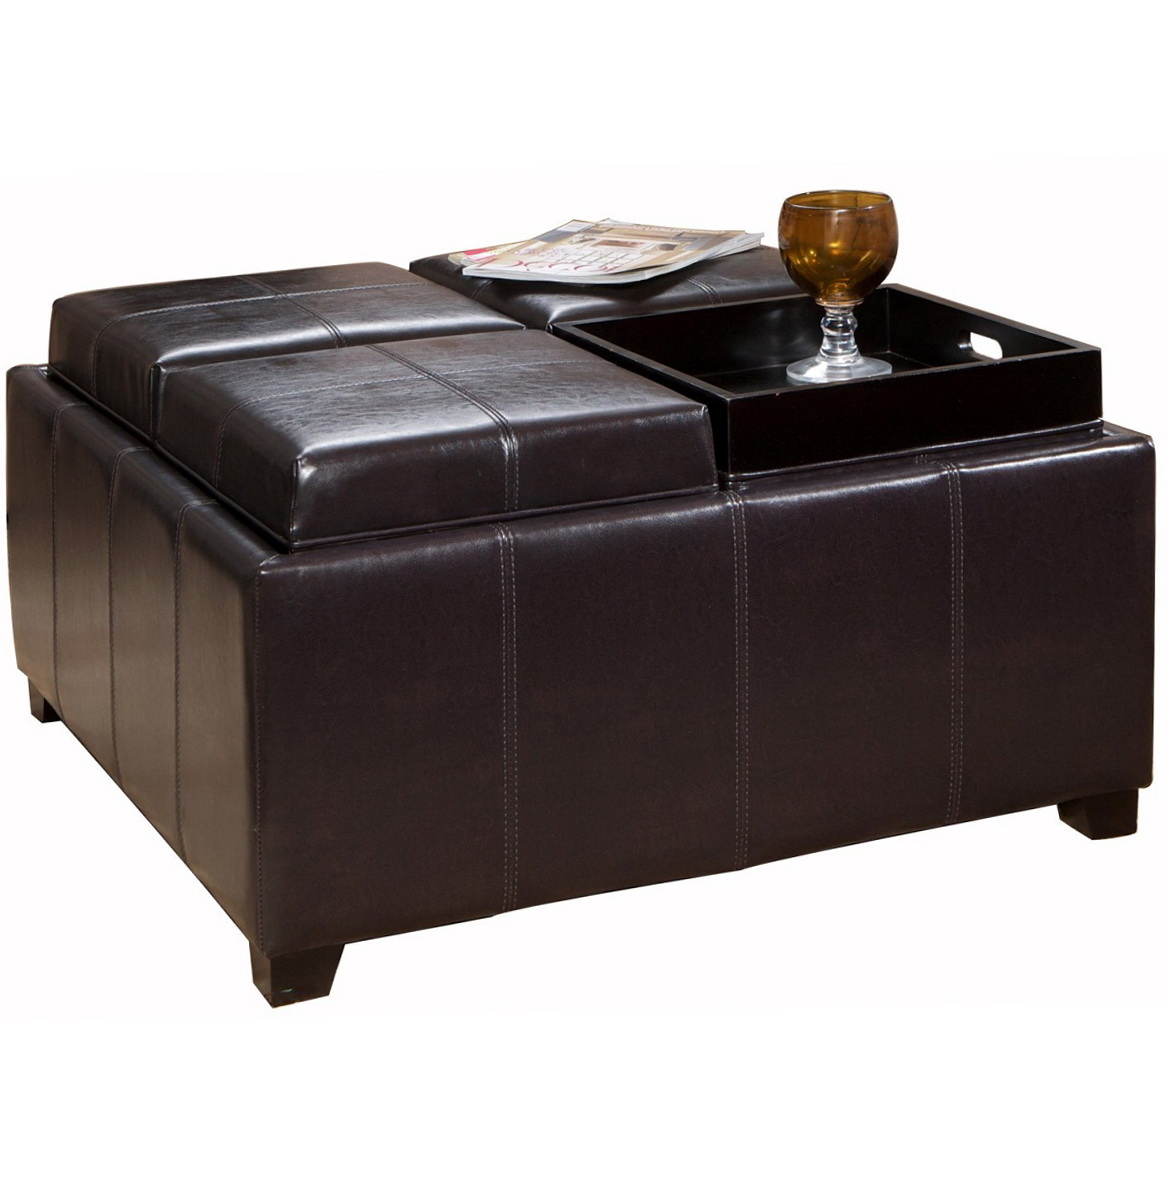 Footstool Coffee Table Tray: Leather Ottoman Coffee Table With Tray